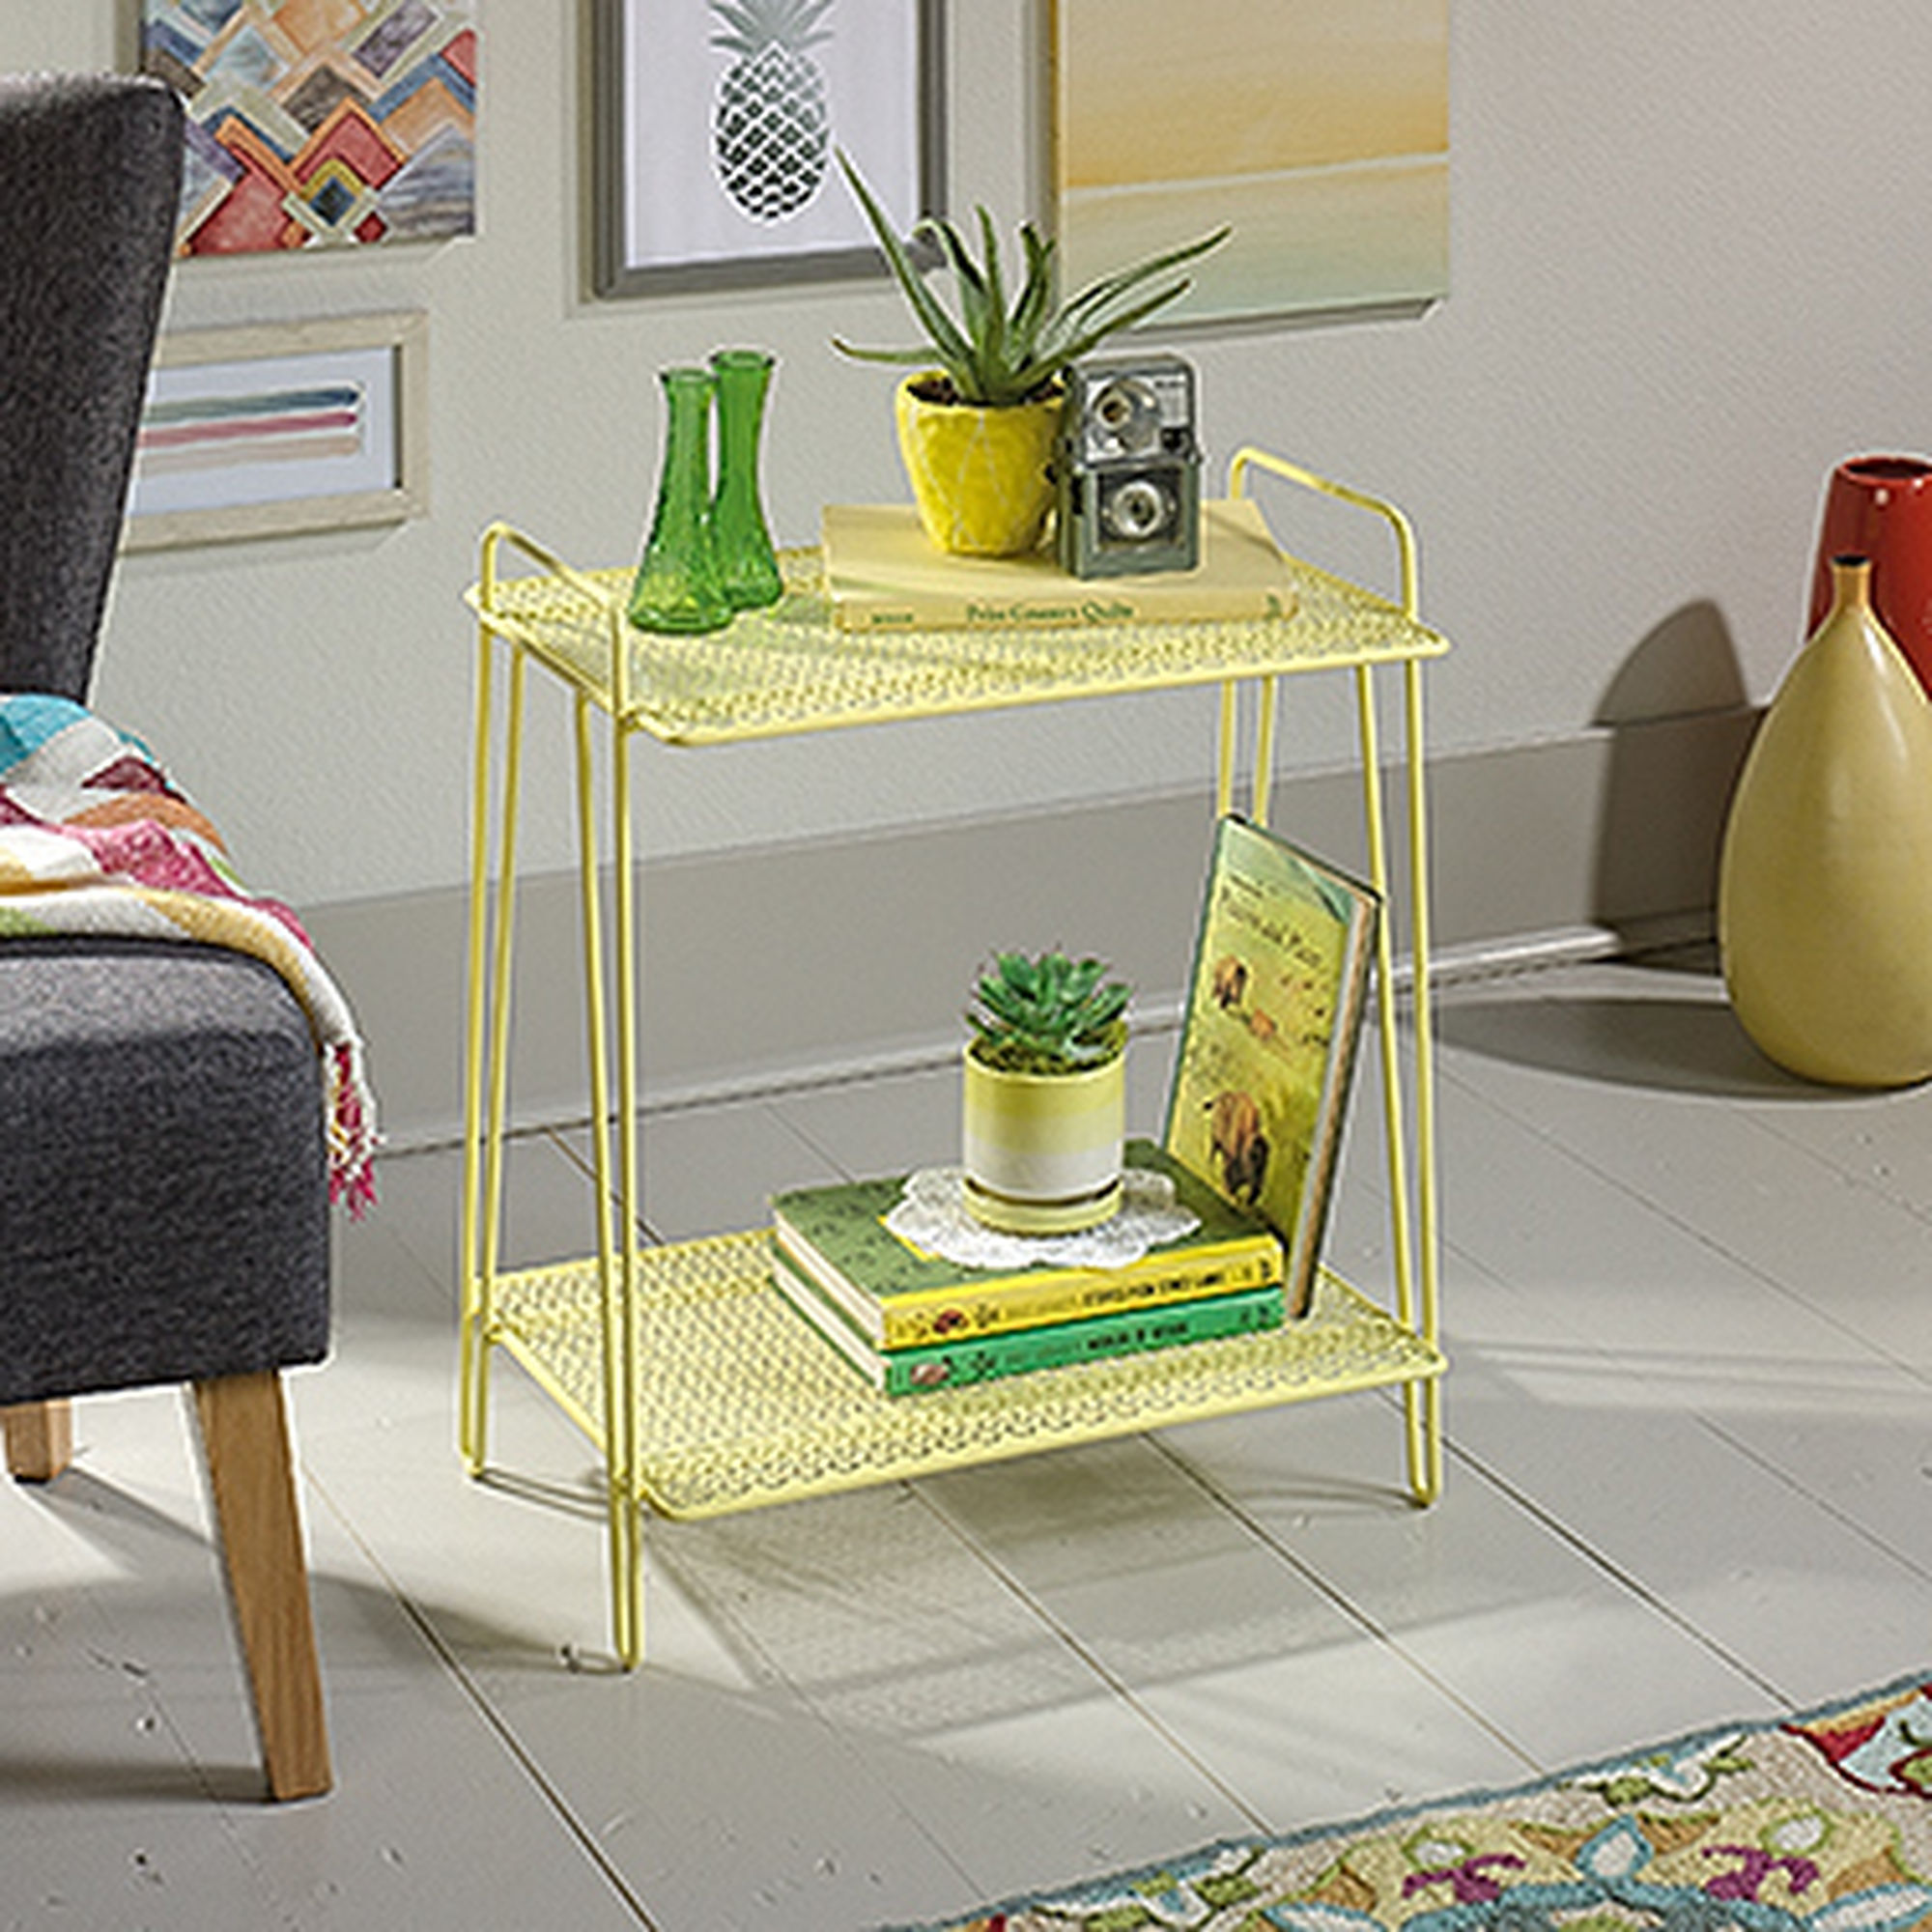 perforated shelves contemporary accent table yellow mathis halloween tablecloth large sofa glass chest drawers coastal home decor octagon side square circular dale tiffany crystal